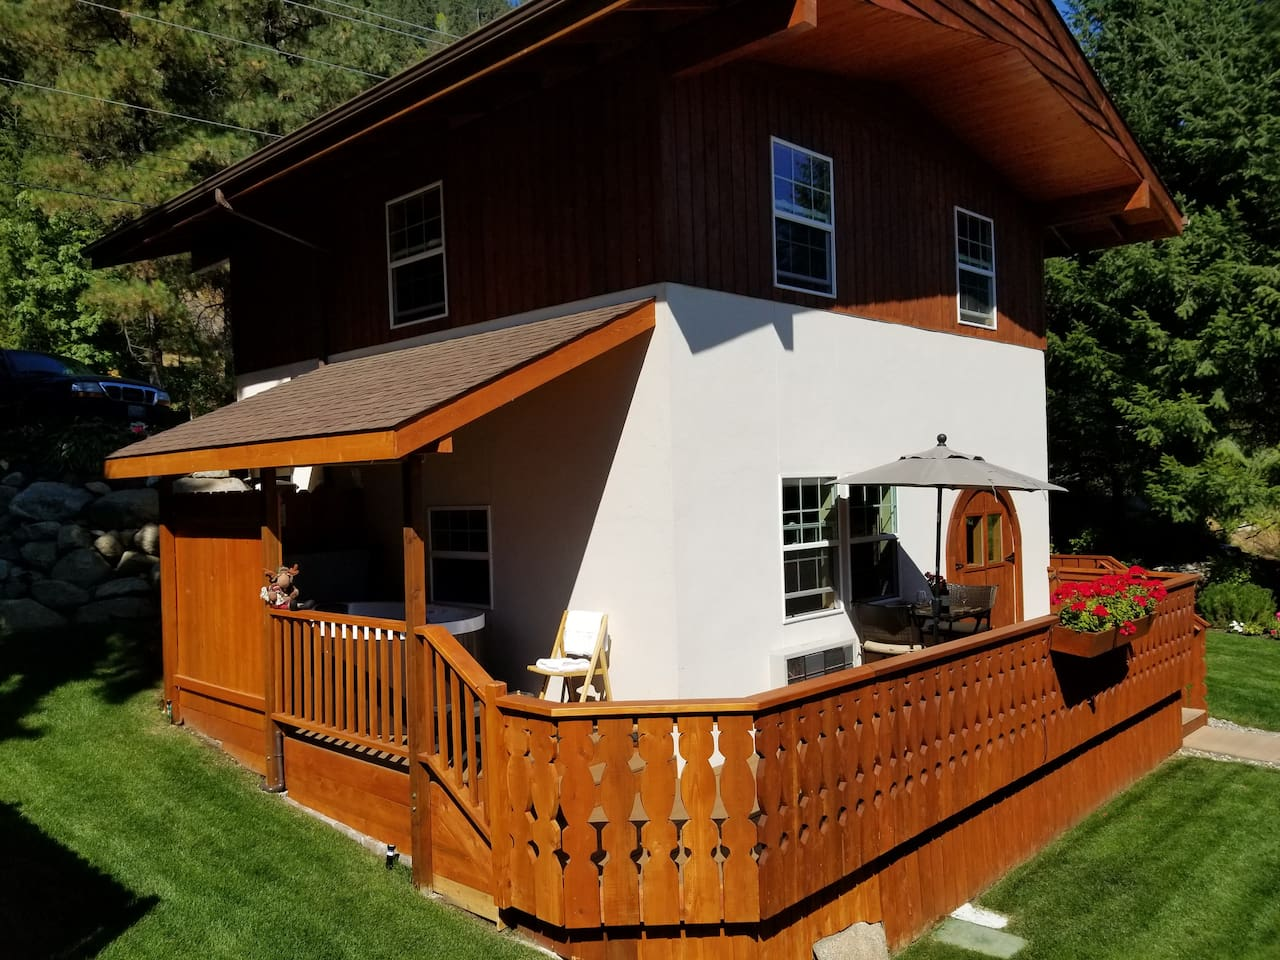 The Chalet with private deck and private 2 person Jacuzzi hot tub with bistro table and umbrella.  The Chalet has beautiful views of the Wenatchee River.